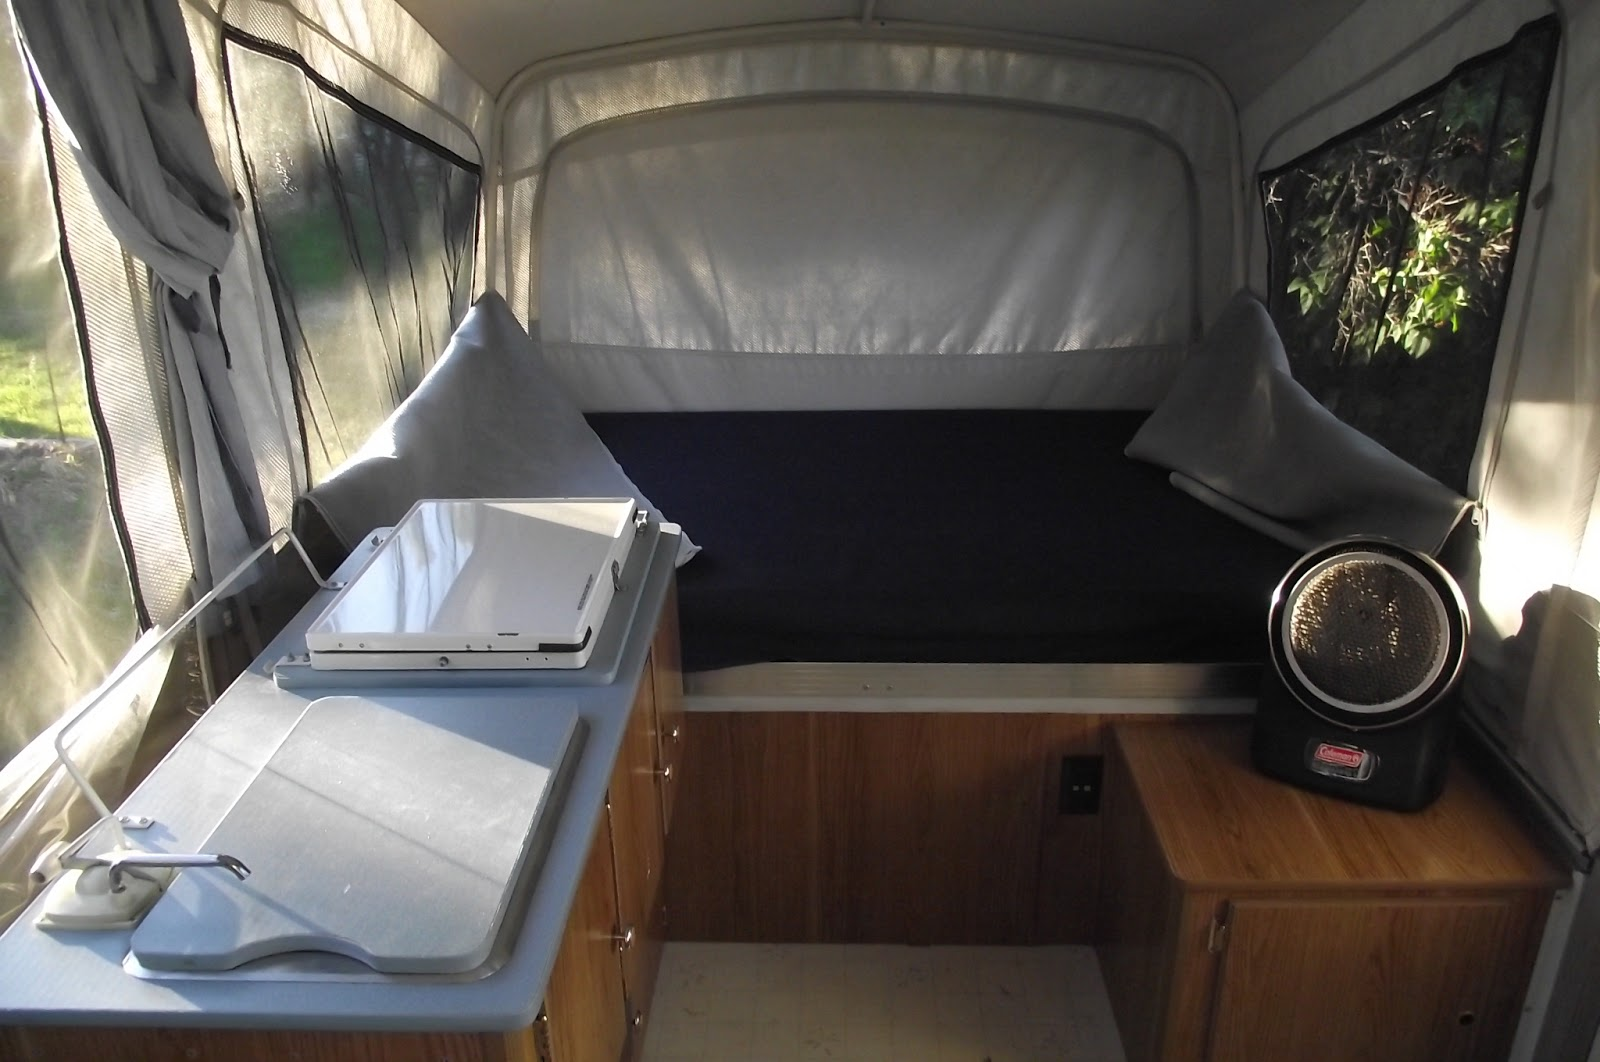 Camping Bastards Com: Our Coleman Pop up camper and its mods